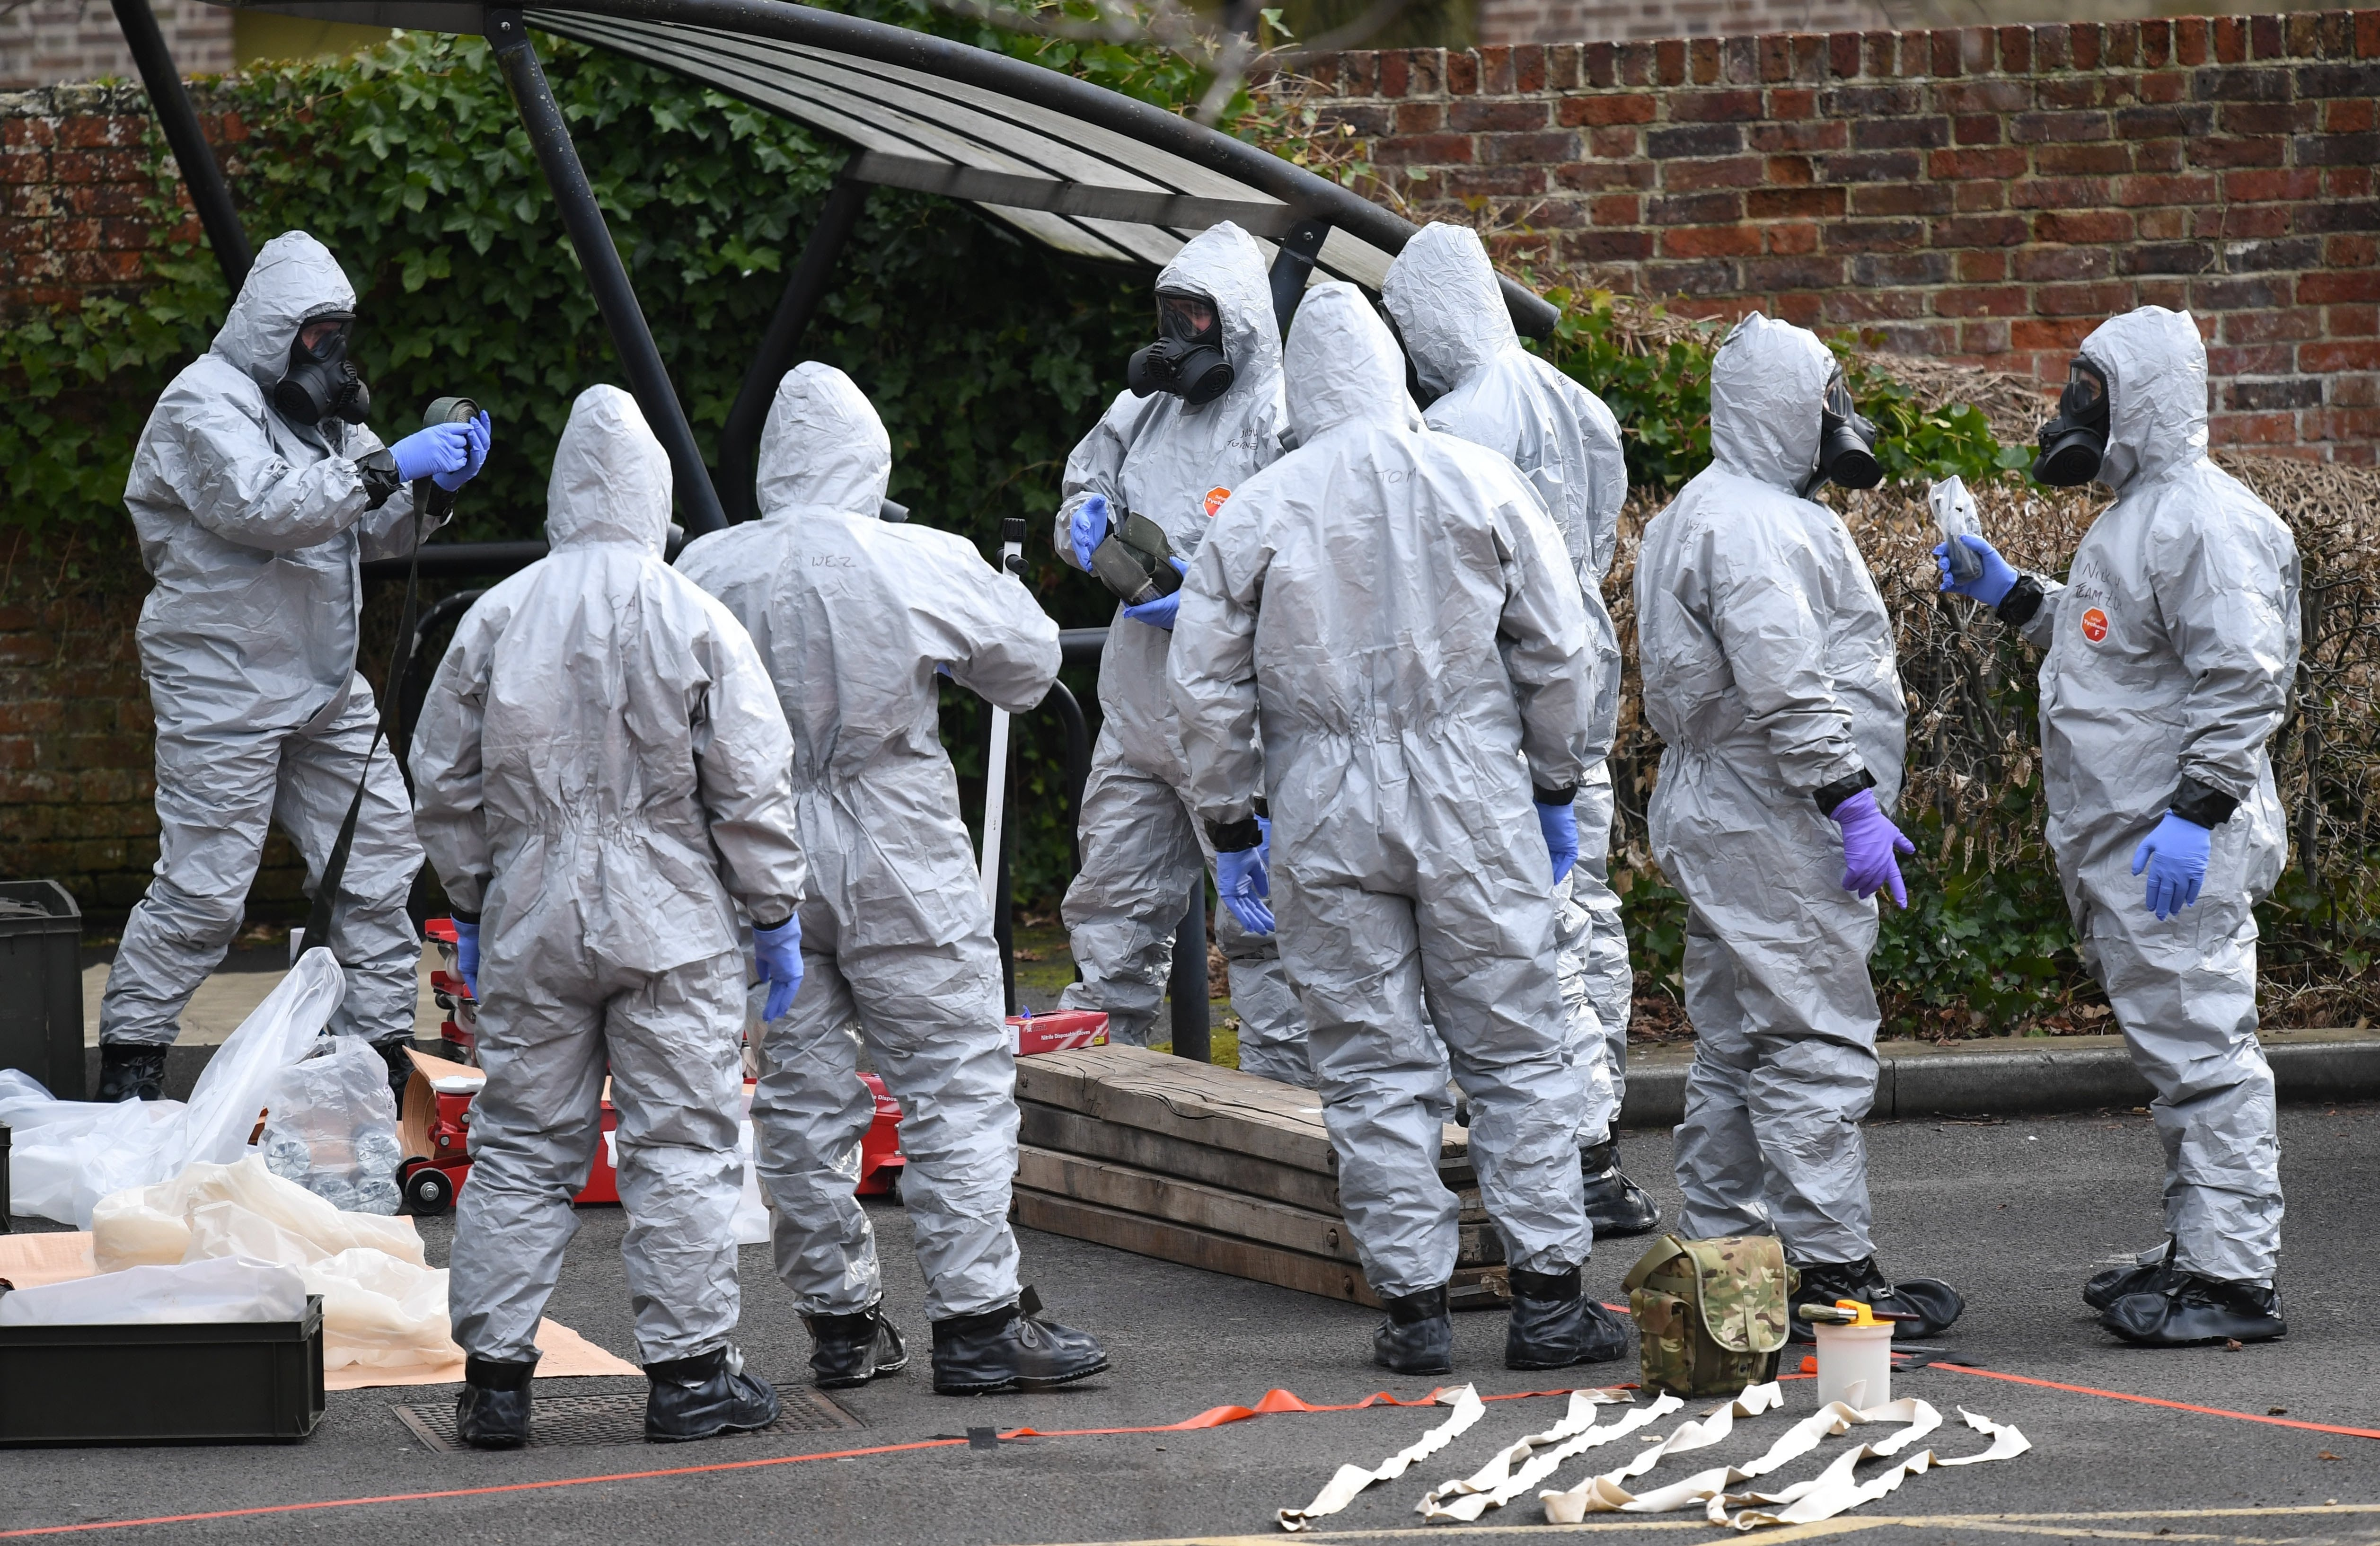 What we know about Novichok the \u0027newby\u0027 nerve agents linked to Russia & Russian spy attack: why Britain is limited in how it responds to Russia